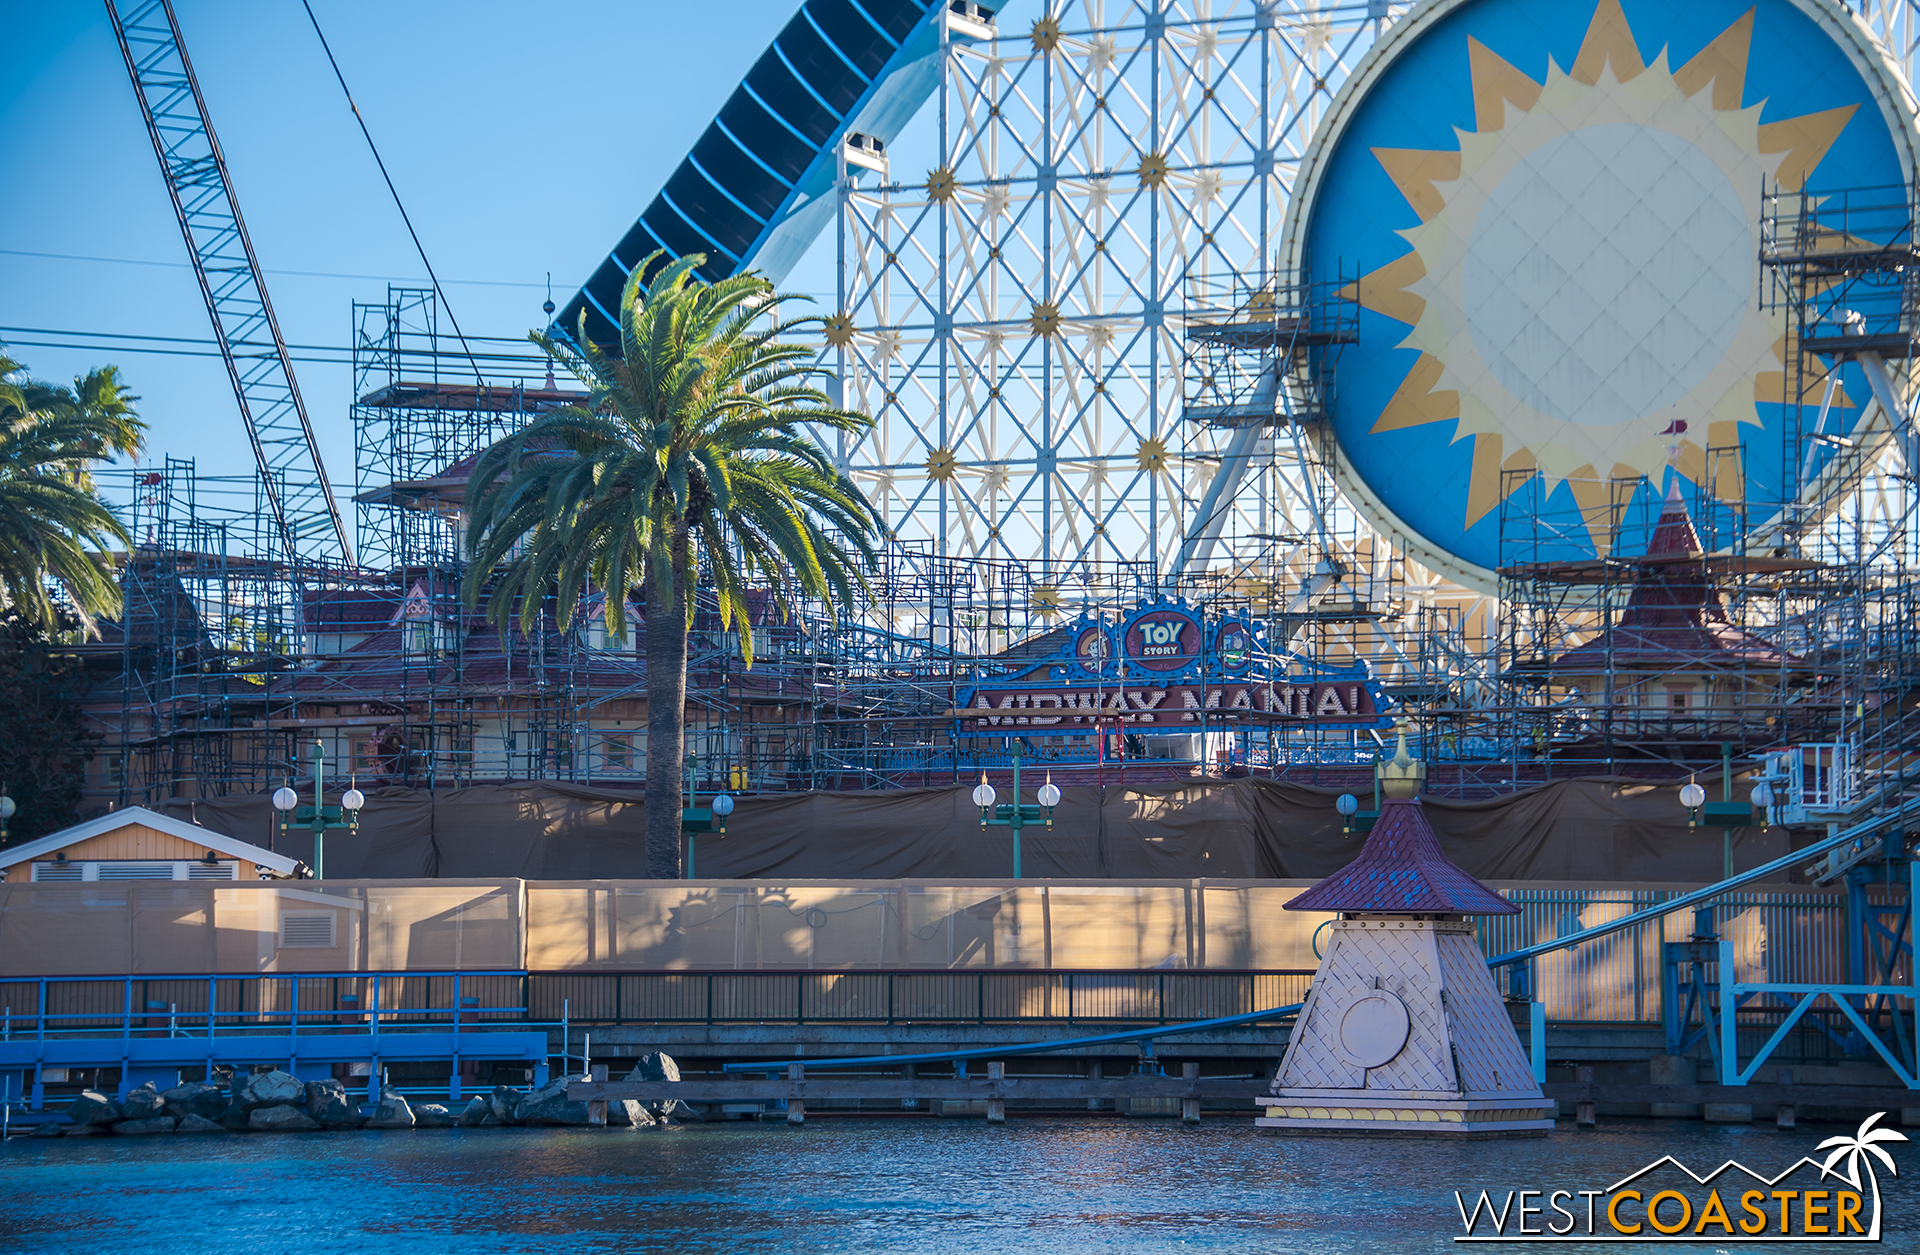 A slew of scaffolding has gone up all along the back of Paradise Pier for work on the building facades.